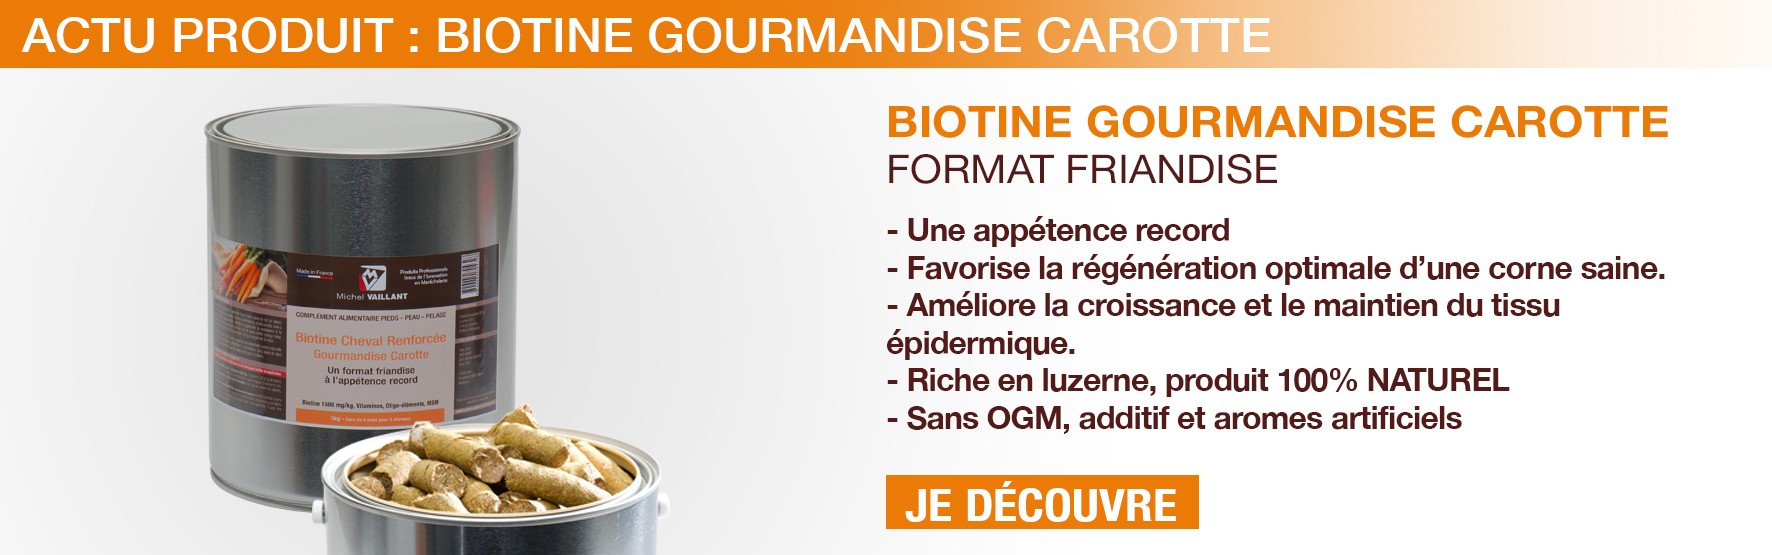 Biotine - soin - carotte - cheval - Friandise - Gourmandise - appétence - sabot